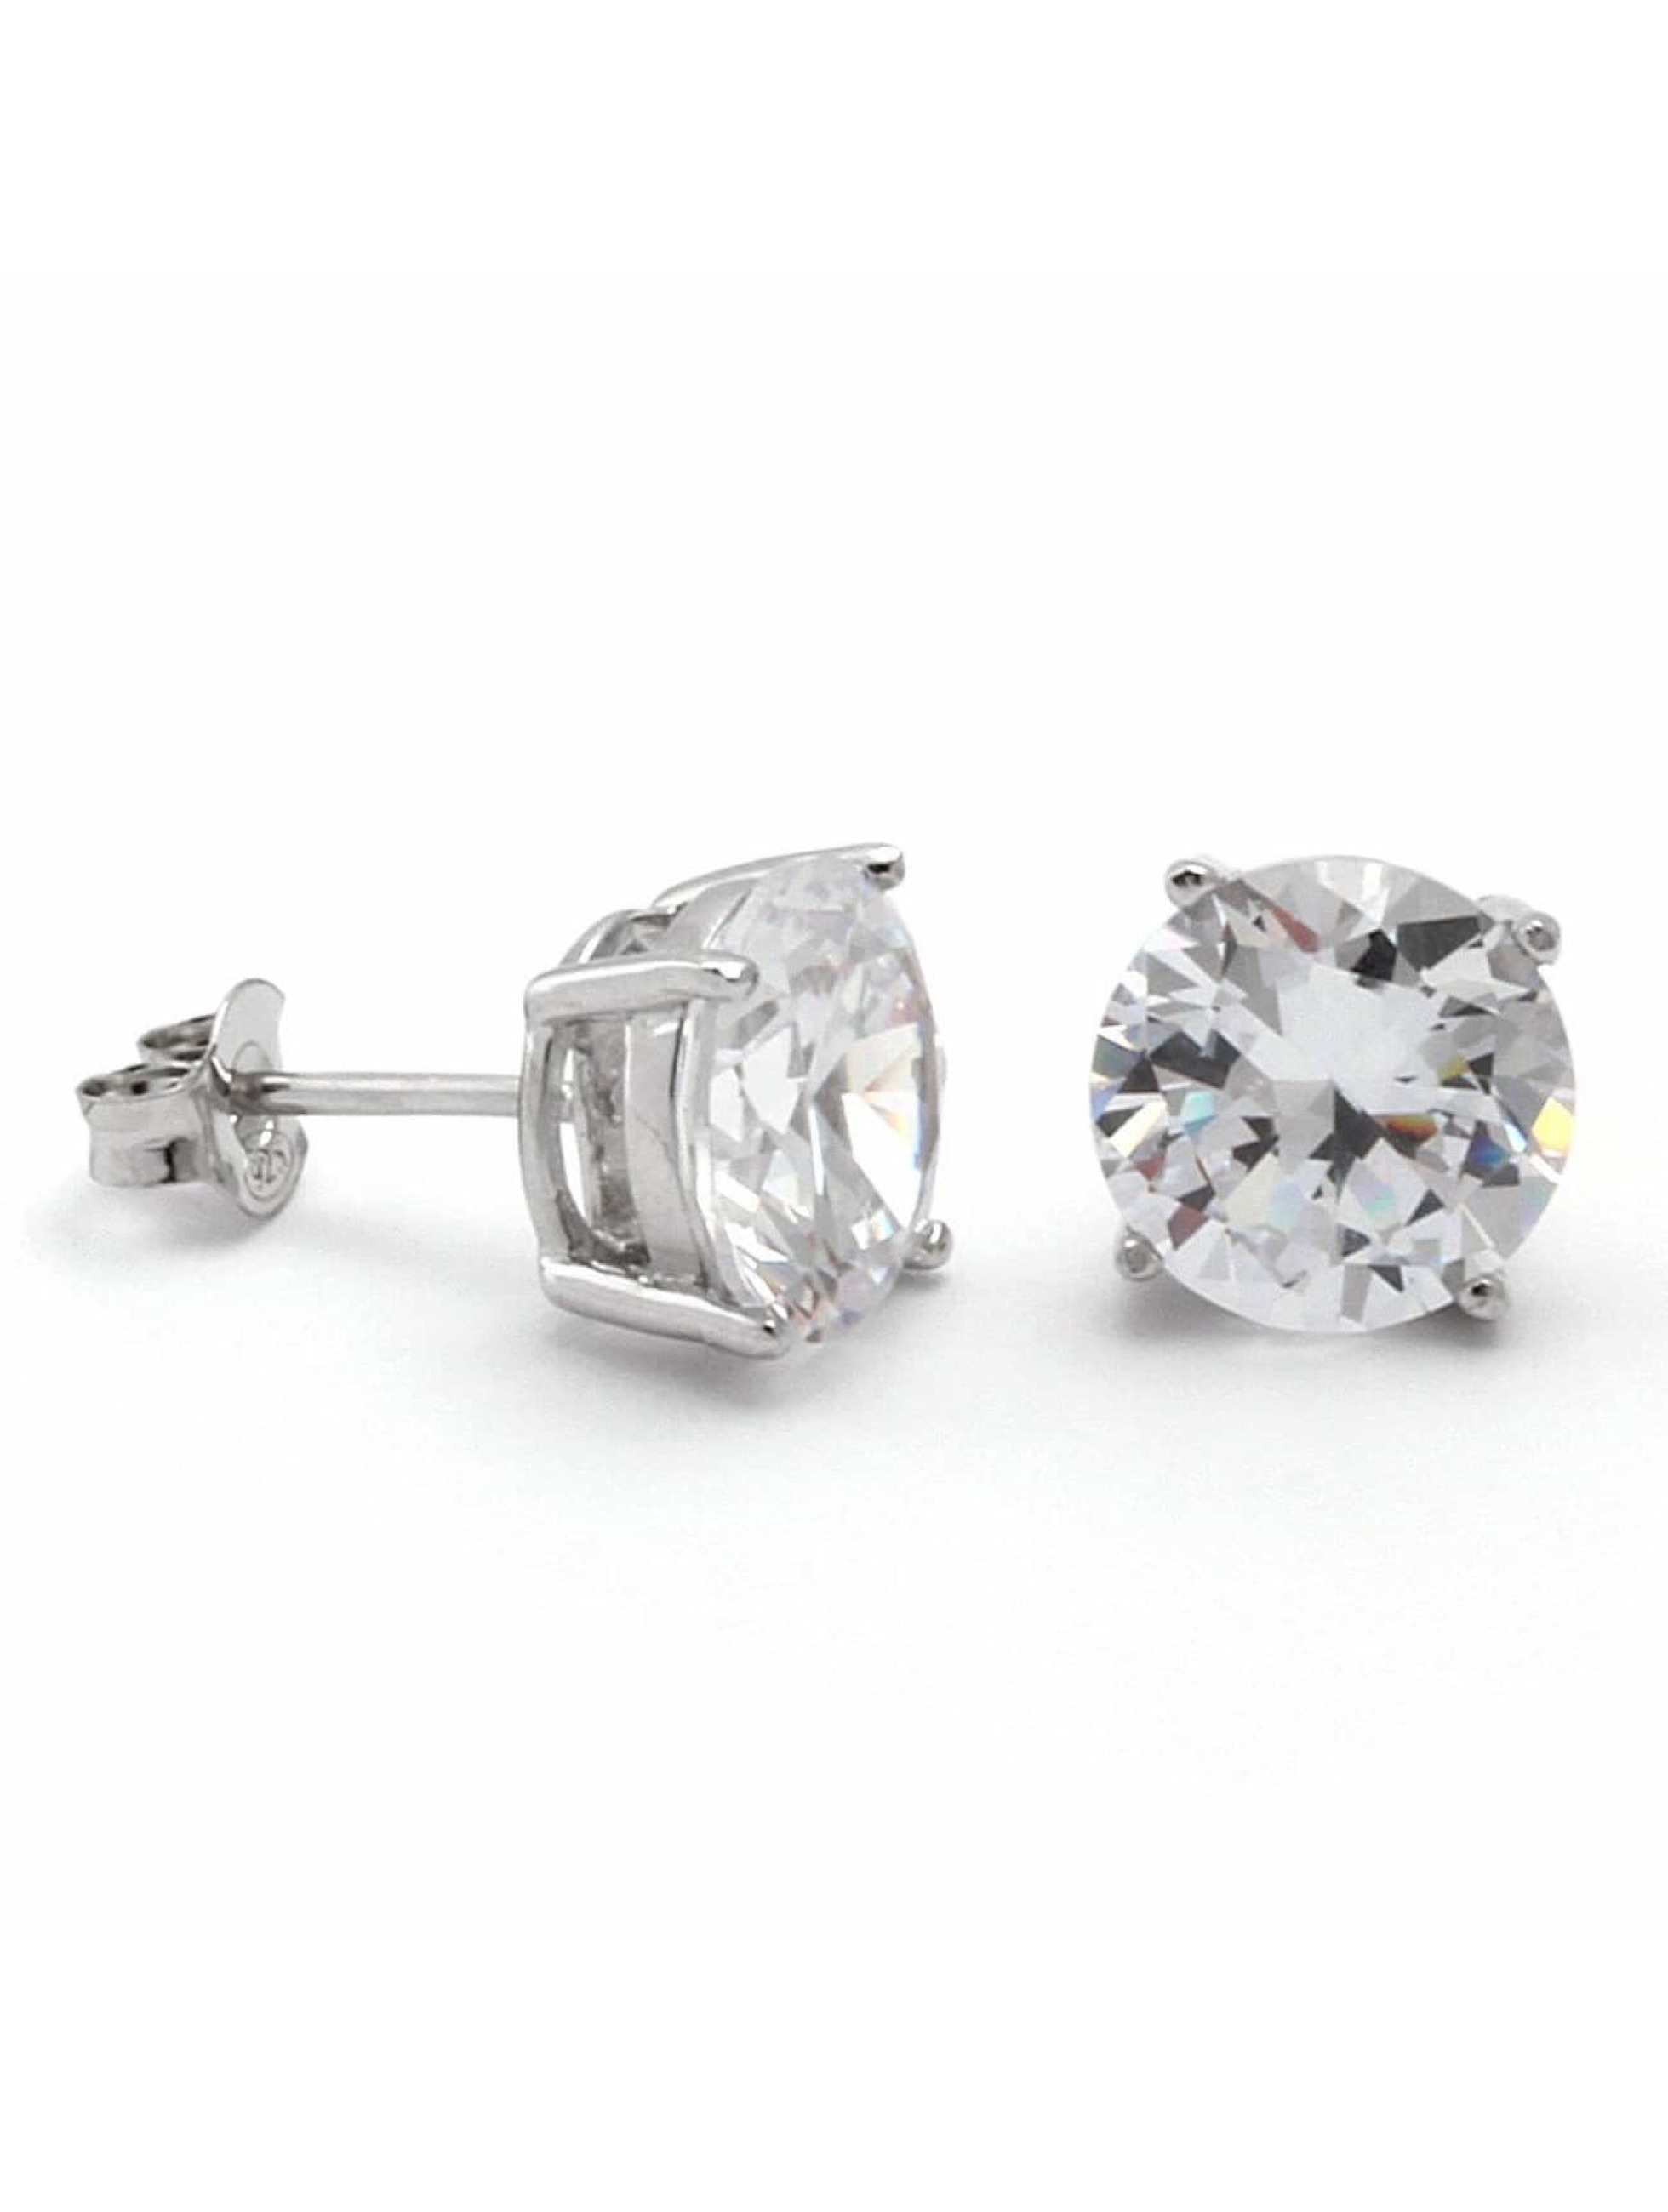 KING ICE Ohrringe Rhodium_Plated 6mm 925 Sterling_Silver CZ silberfarben